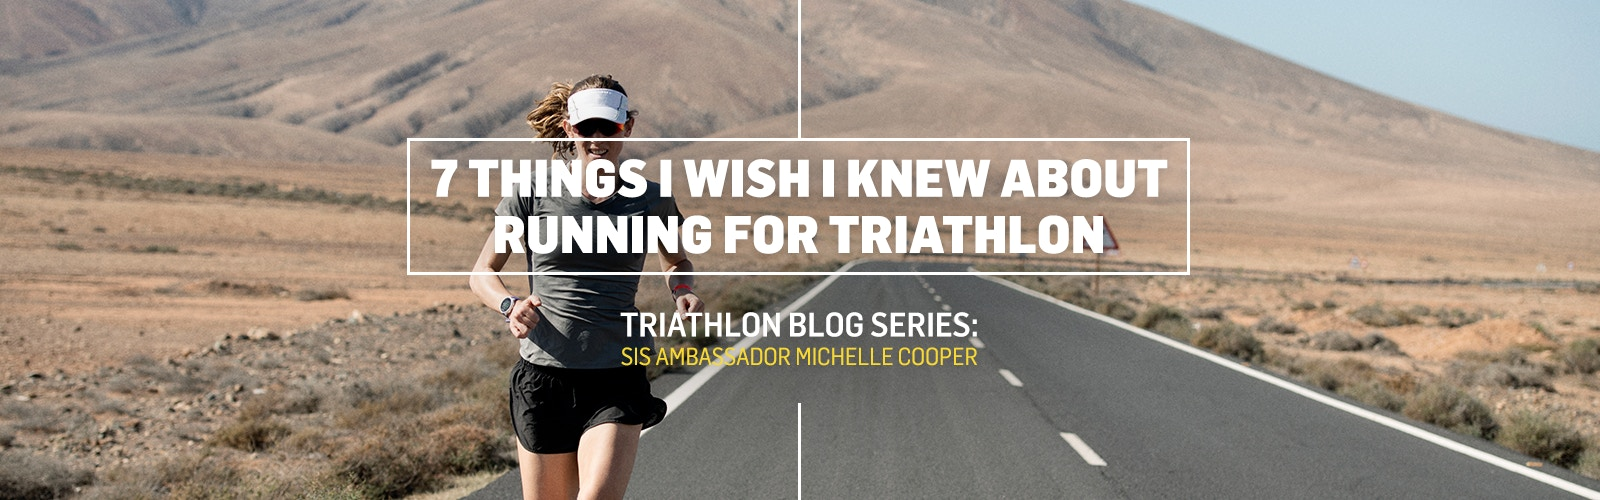 SIS - 7 Things I wish I knew about running for a triathlon